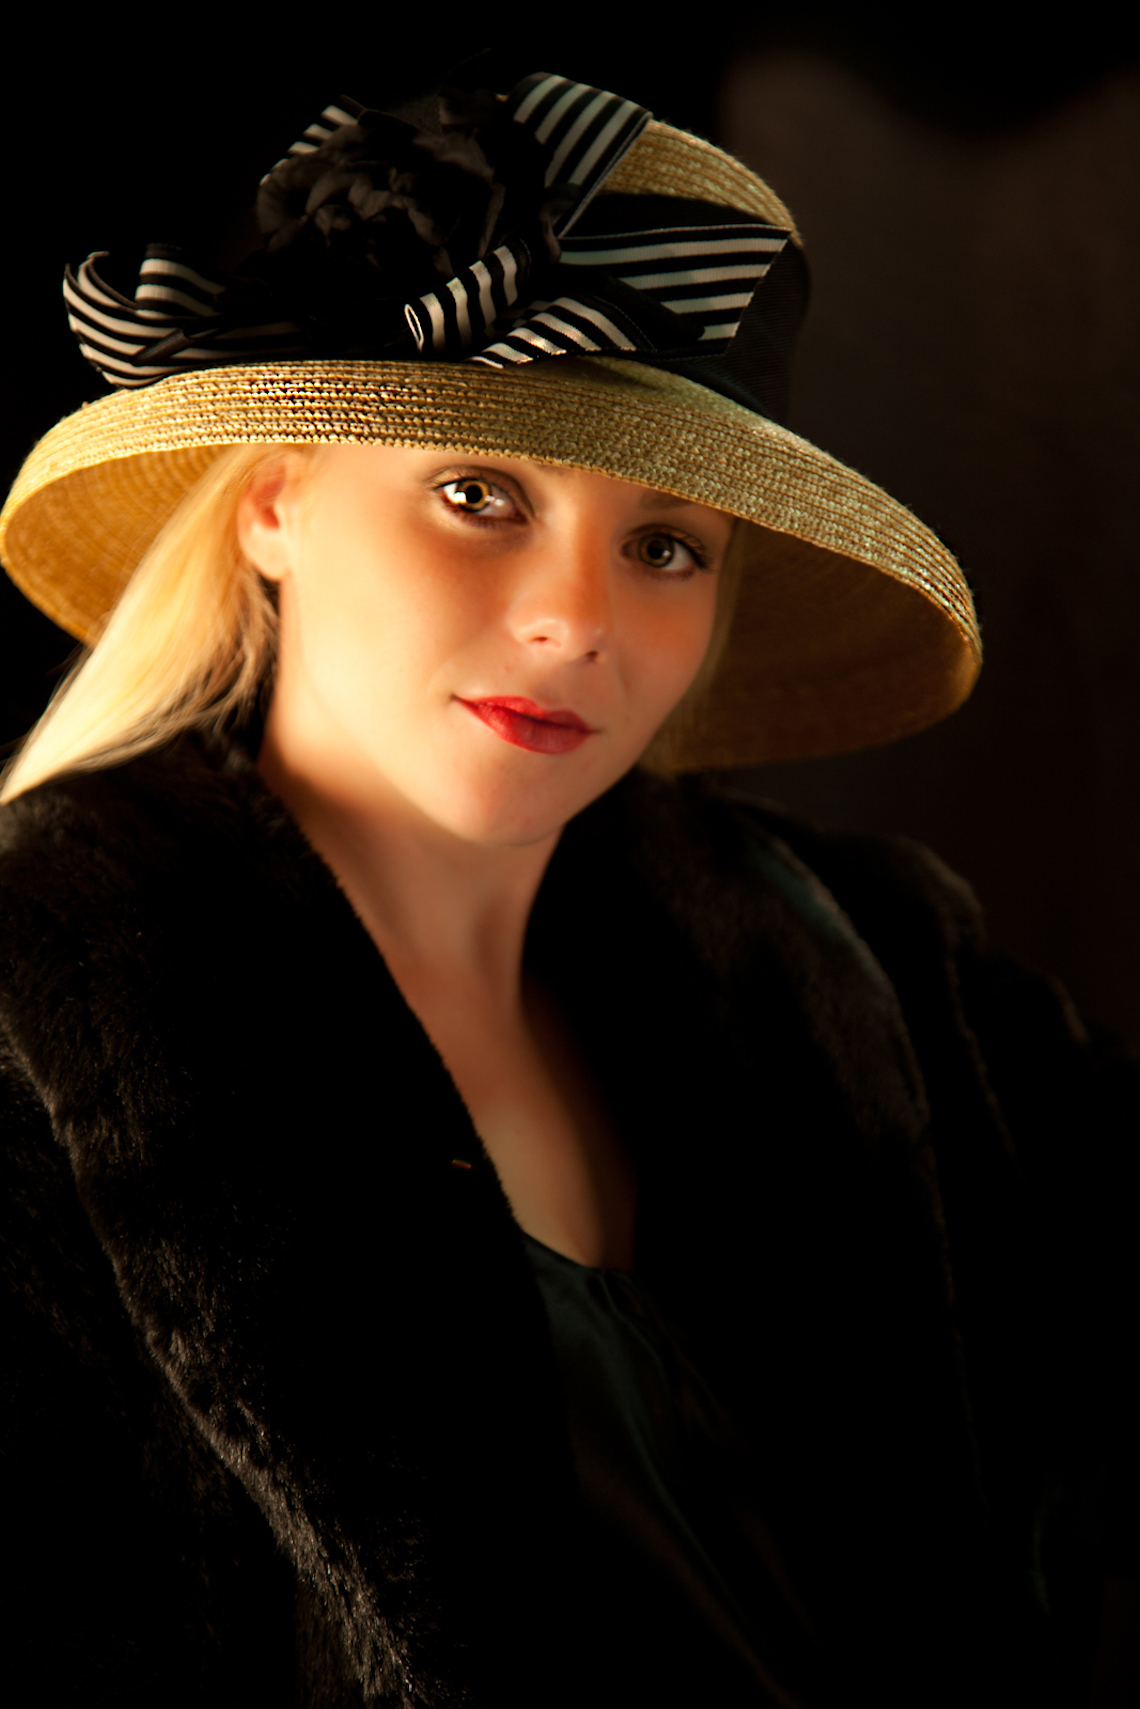 1_Confident-young-woman-with-hat